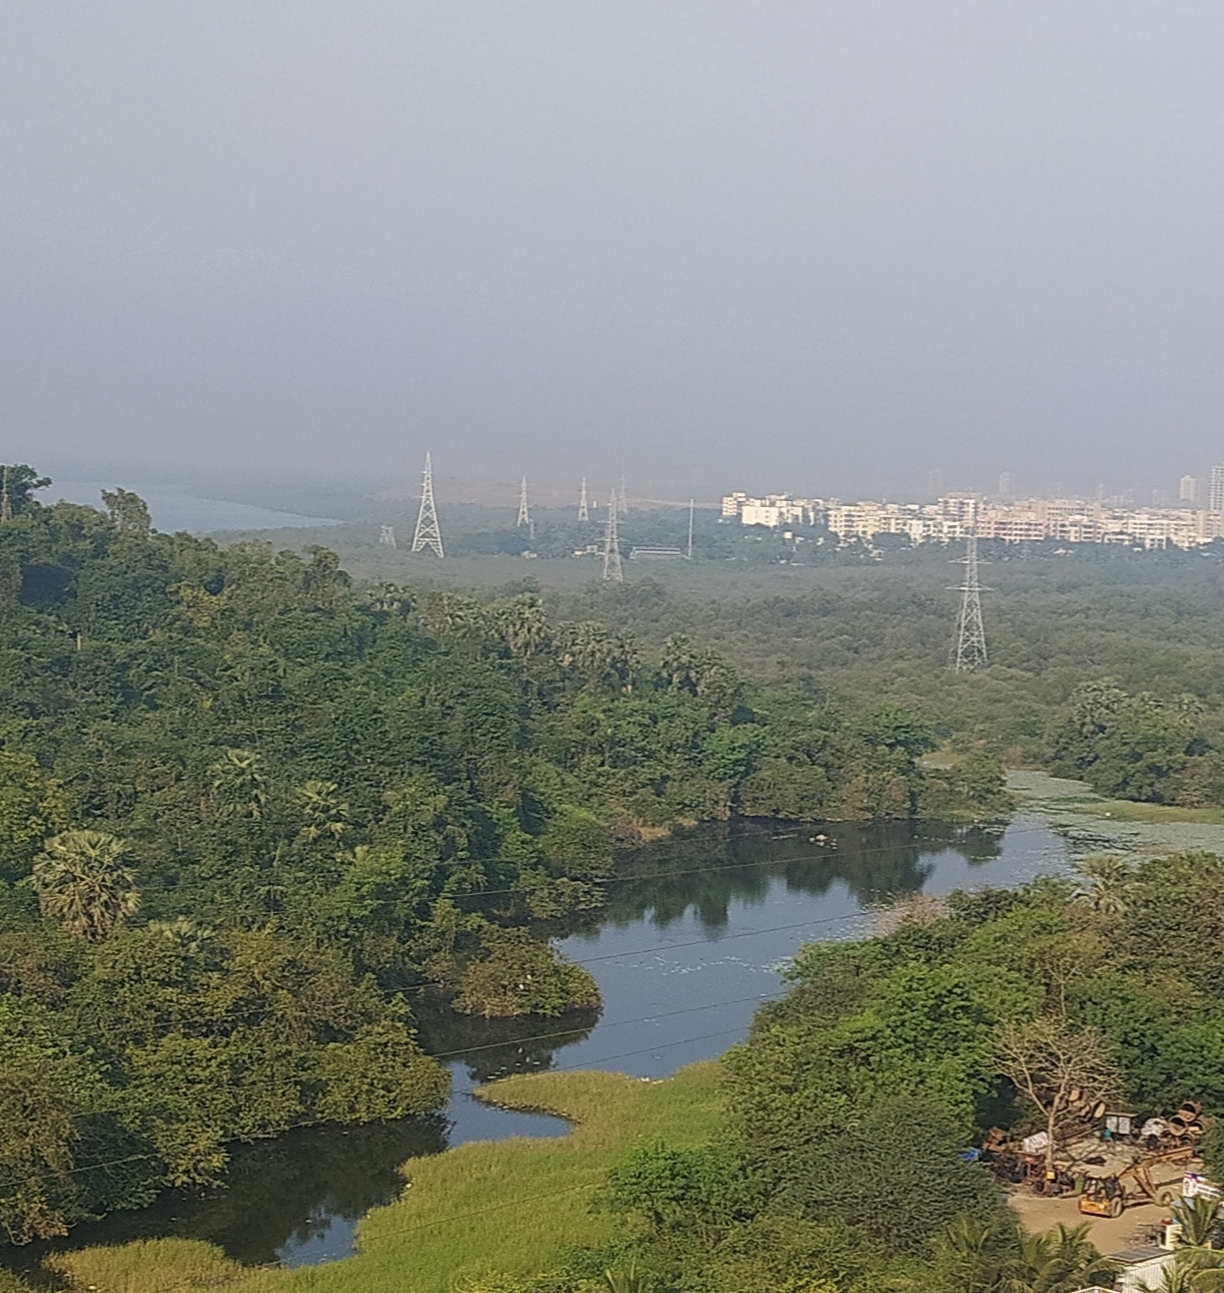 A view of the Tarzon Lake in North Mumbai. The lake, which recorded 79 species of birds by ebird.org in 2020 has now been cordoned off for visitors. Photo by Hepzi Anthony.